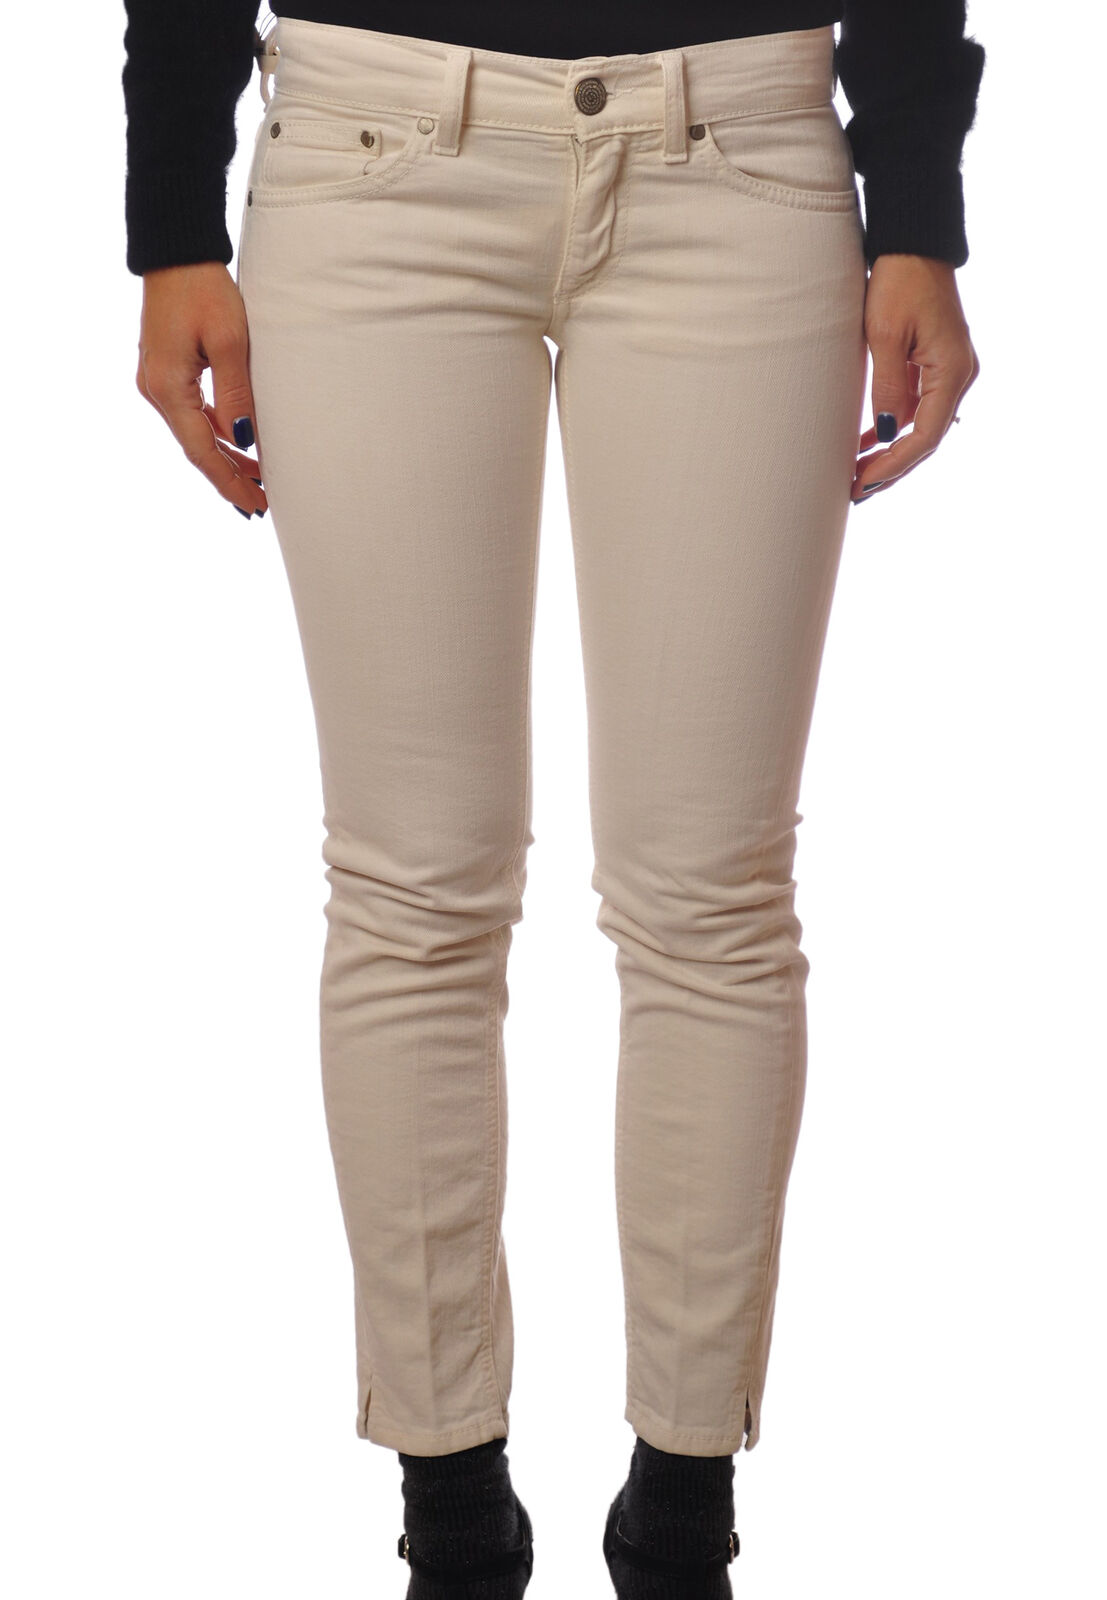 Dondup  -  Pants - Female - White - 4612822A182446